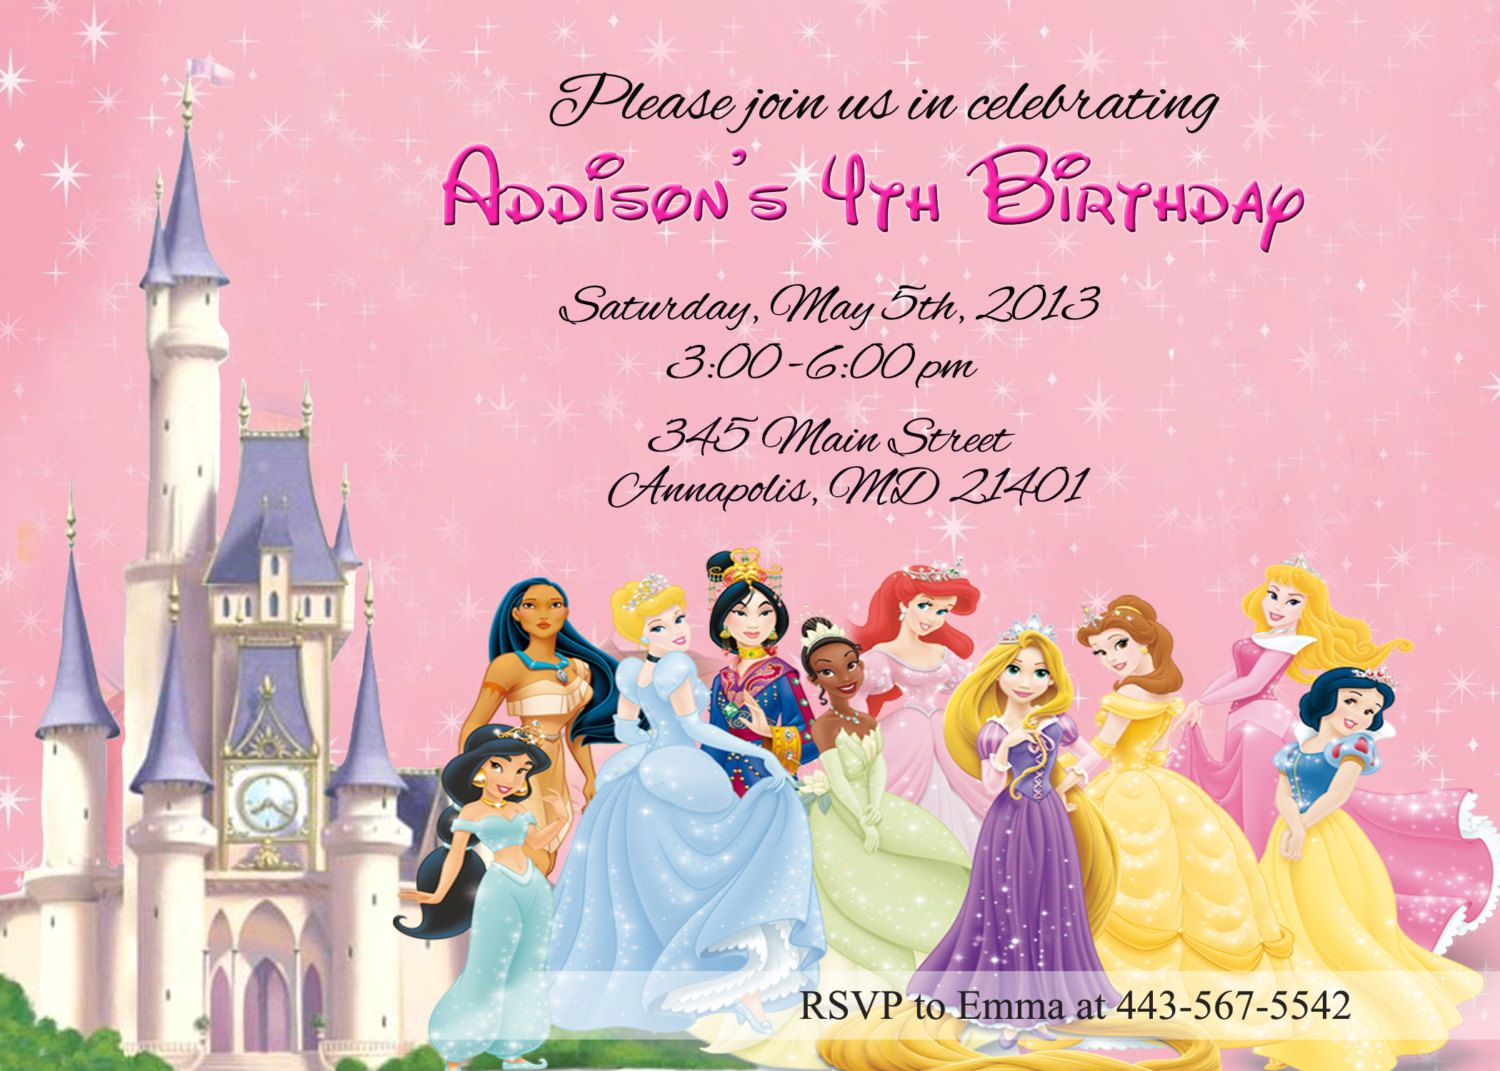 disney princess birthday party invitation jordyn princess invitation disney princess invitation birthday princess invitation printable princess invite birthday party disney princesses by